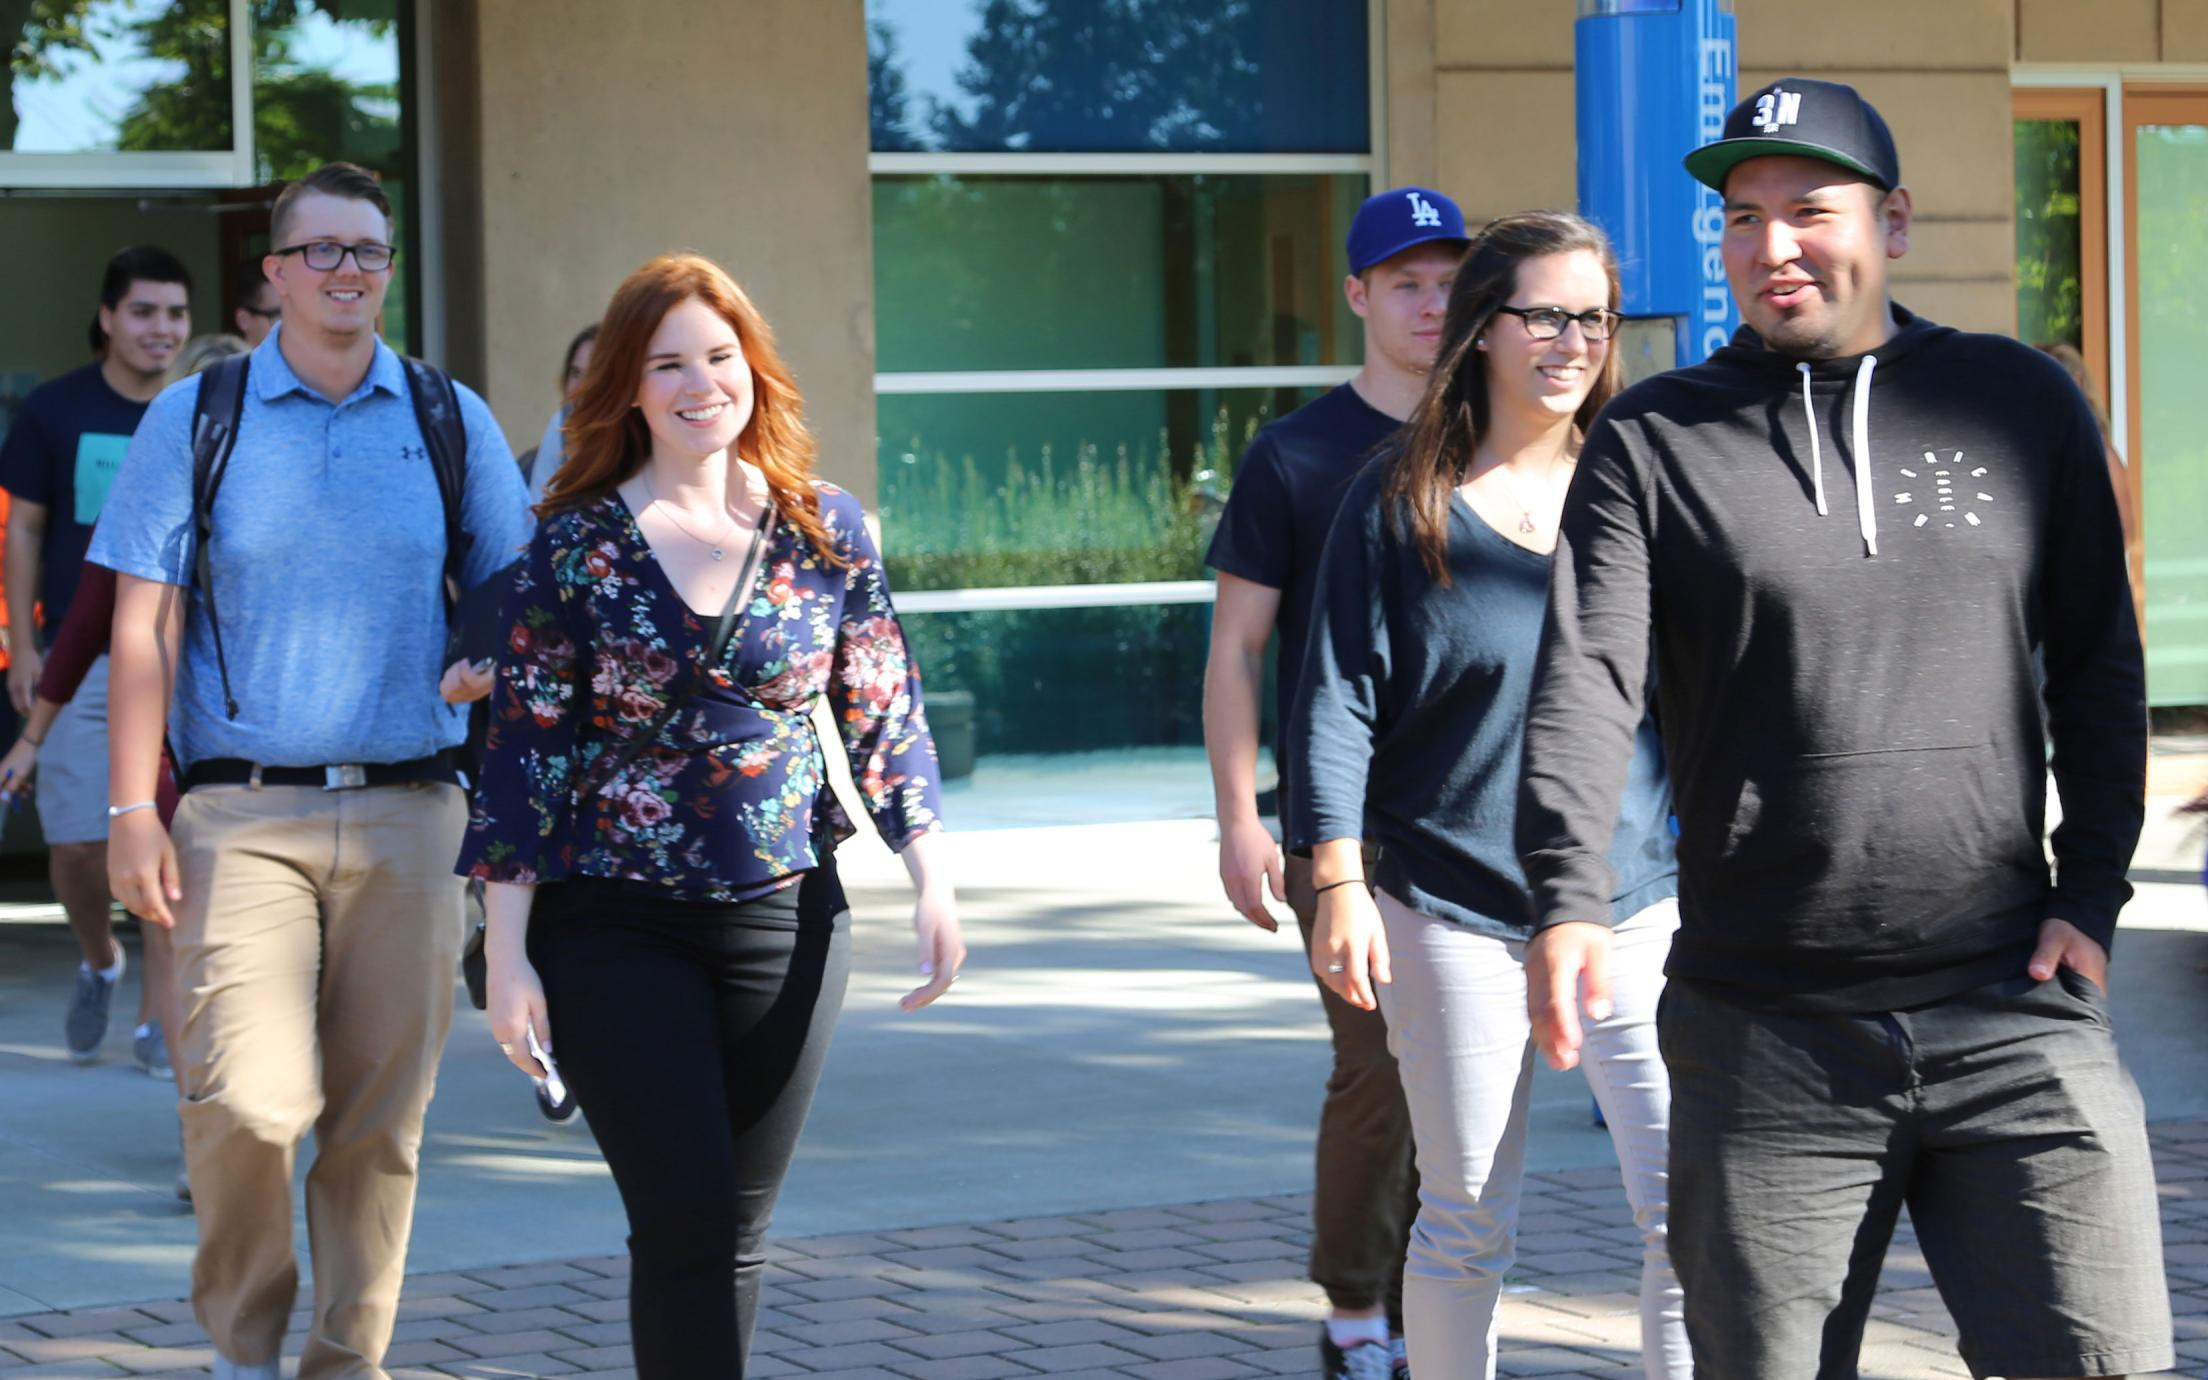 VIU Cowichan Campus Group of Students